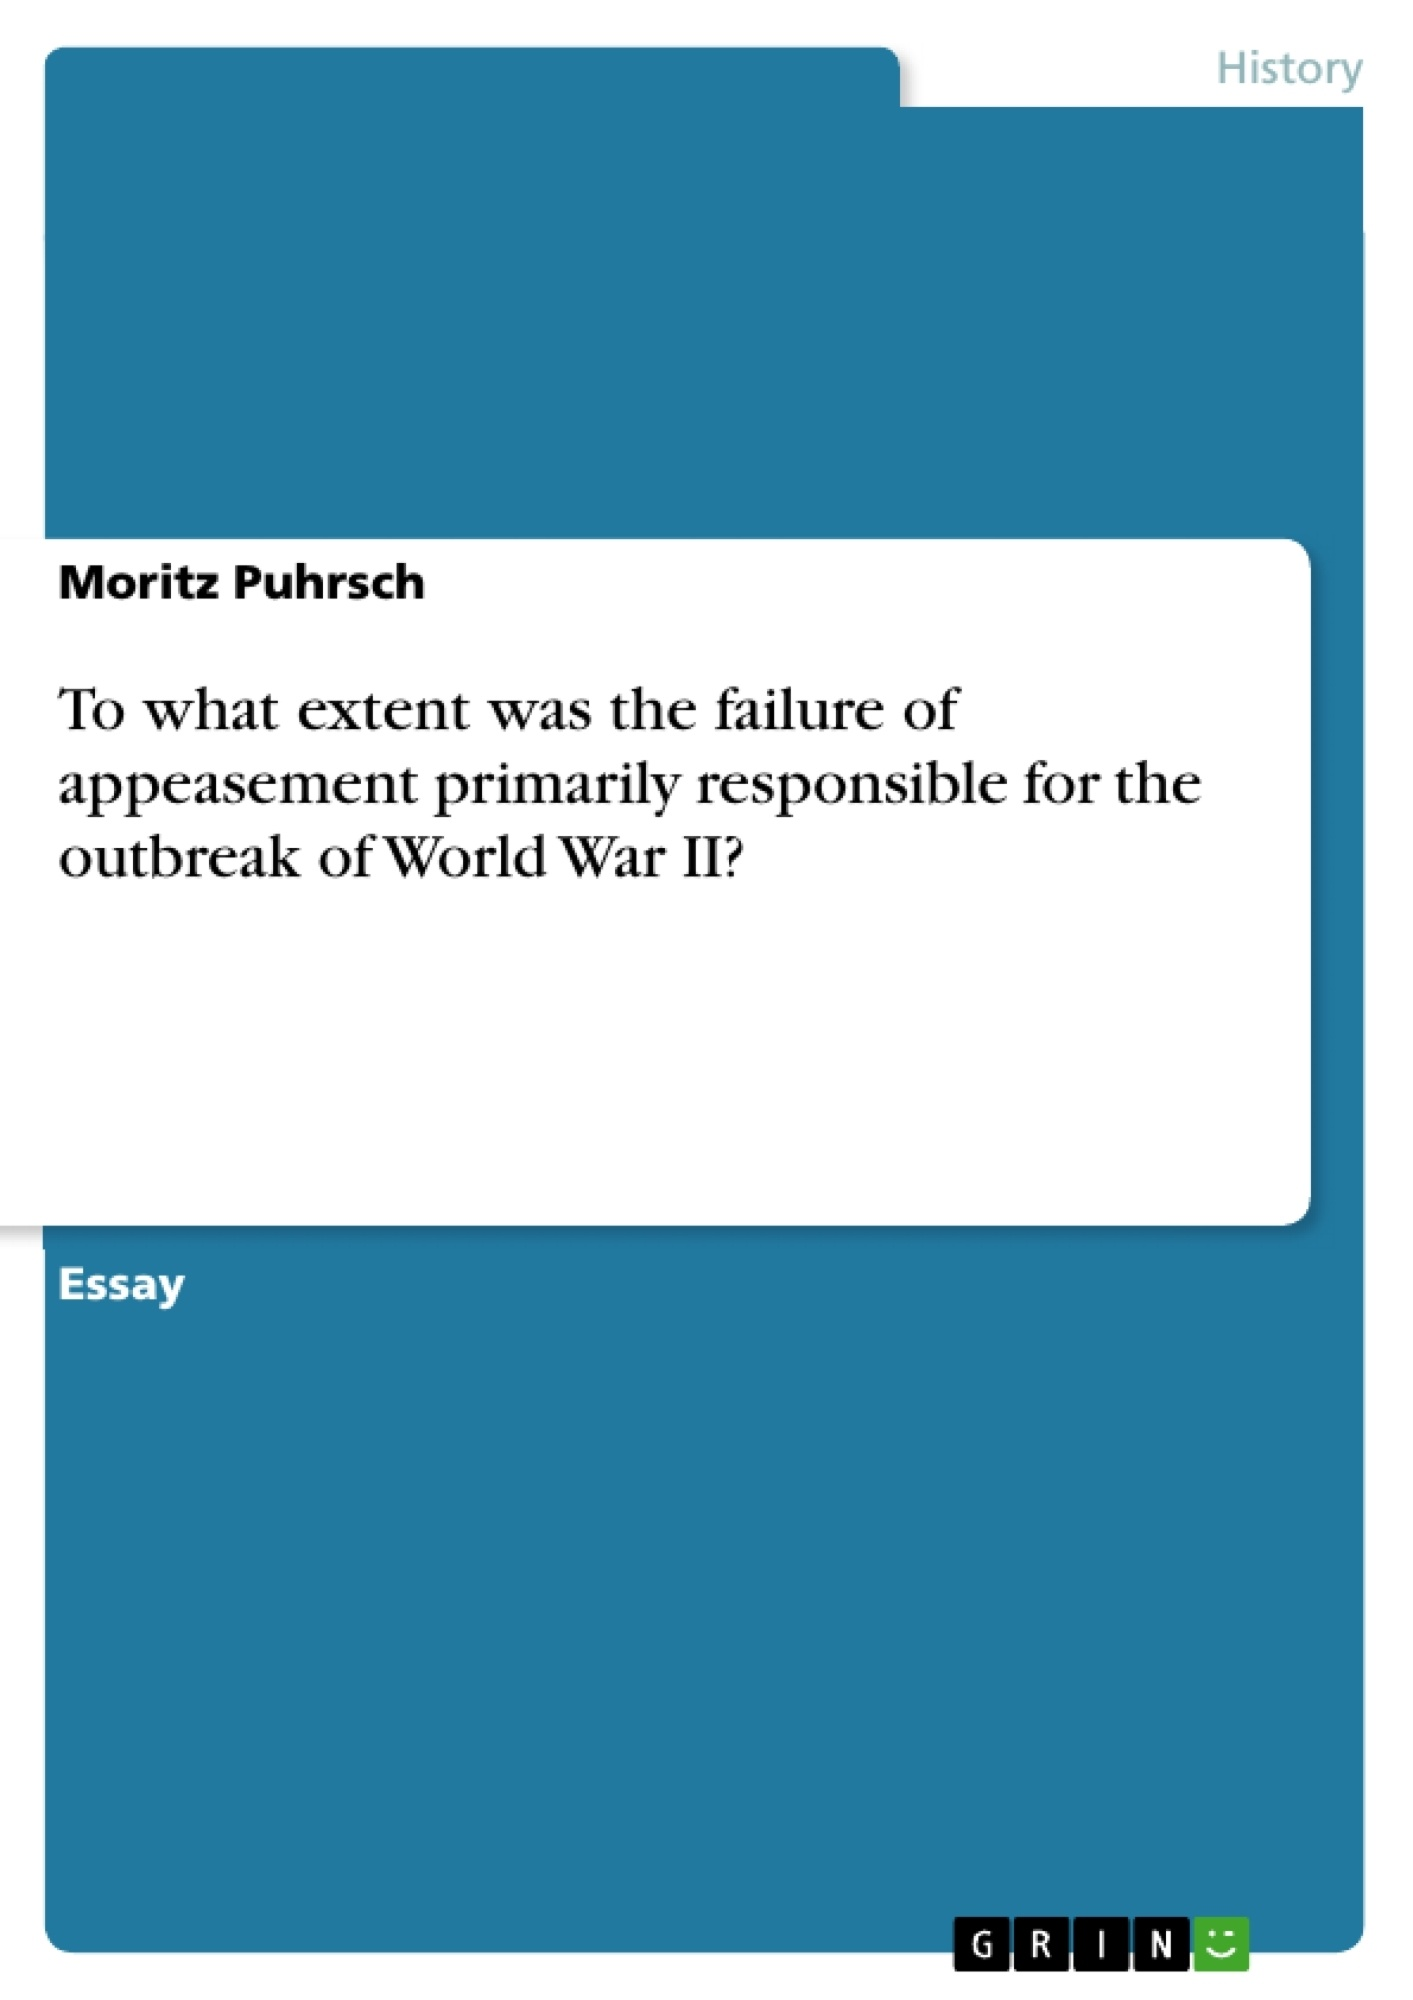 Title: To what extent was the failure of appeasement primarily responsible for the outbreak of World War II?